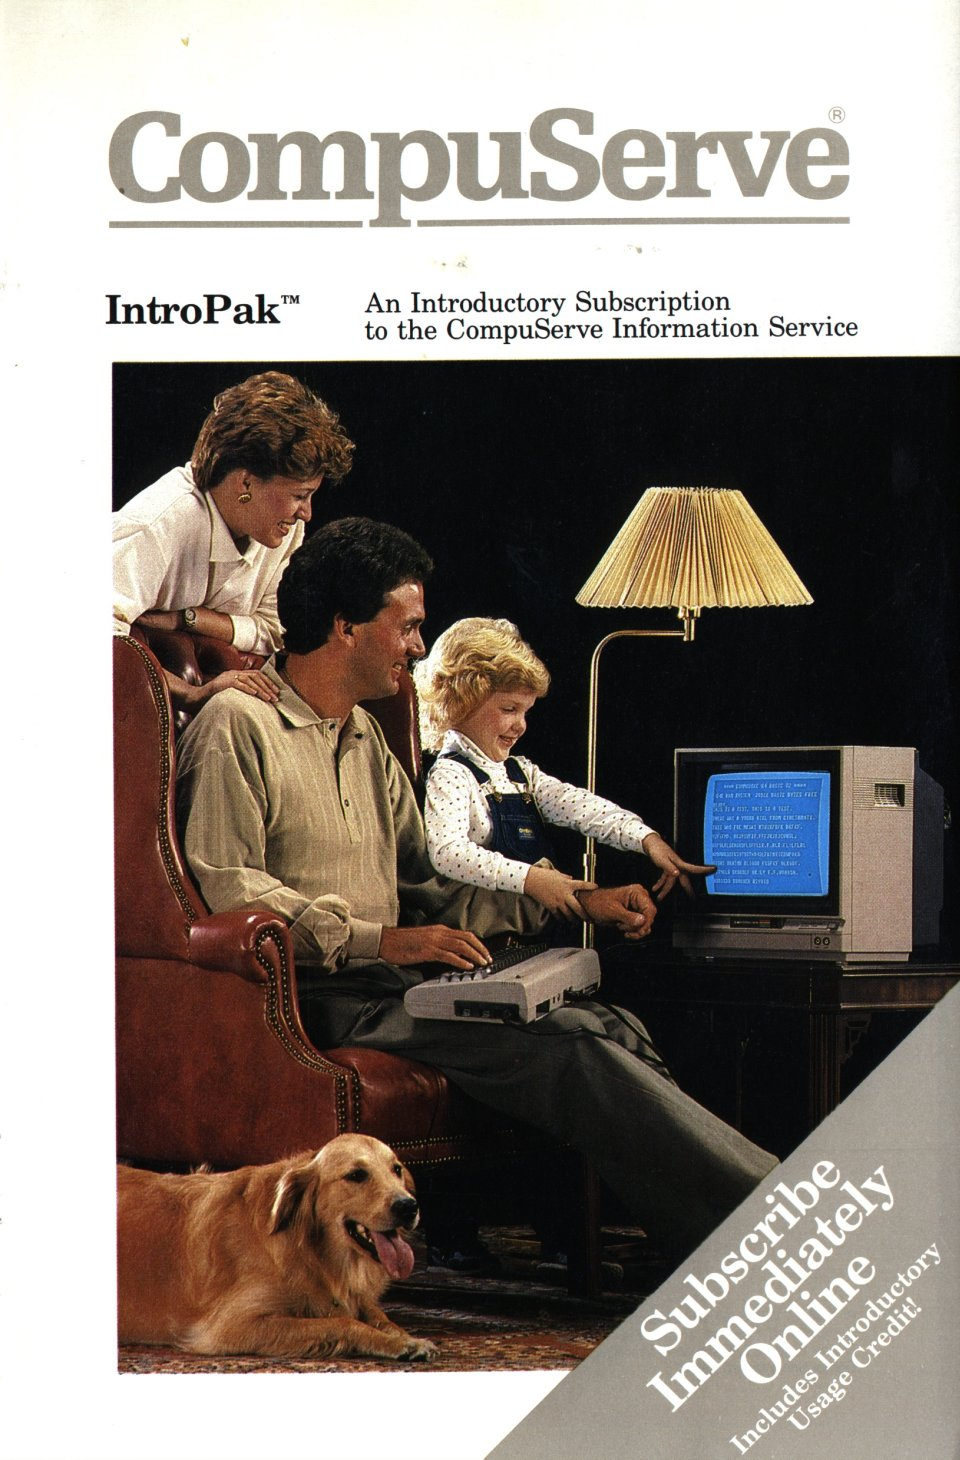 [CompuServe IntroPak front cover (1/2)]